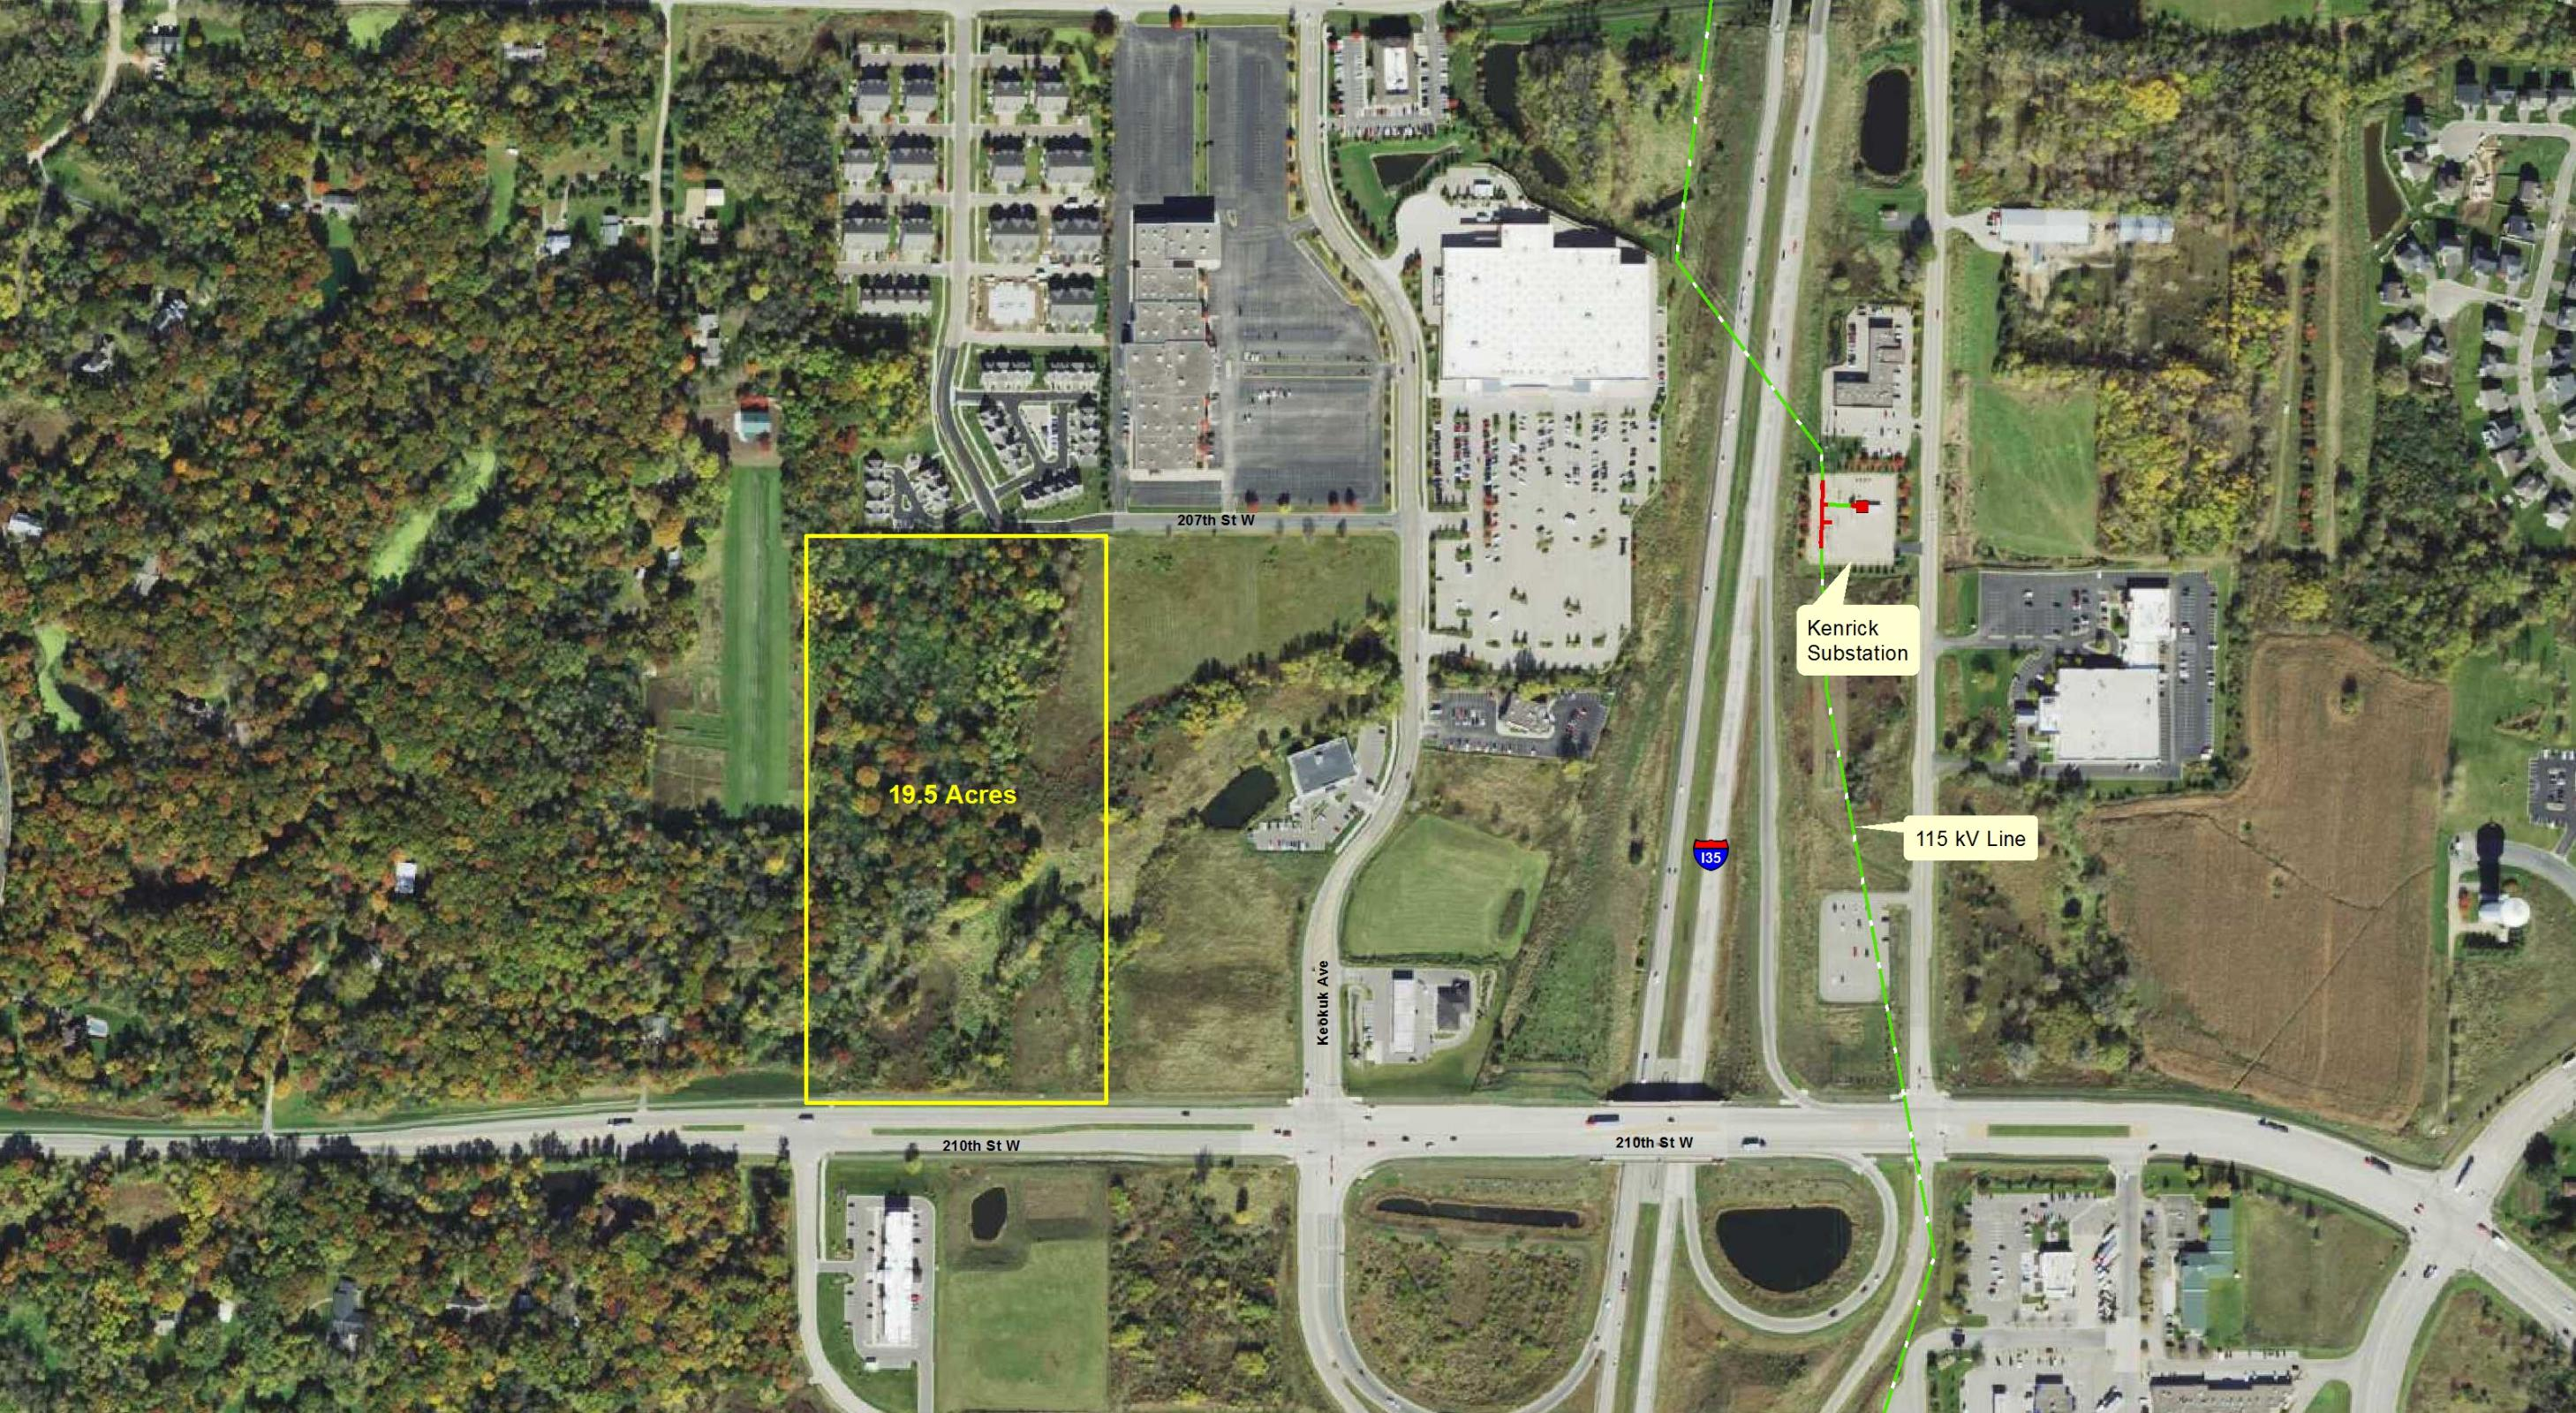 Main Photo For Lakeville Commerce Center Data Center Site (Lakeville, MN)